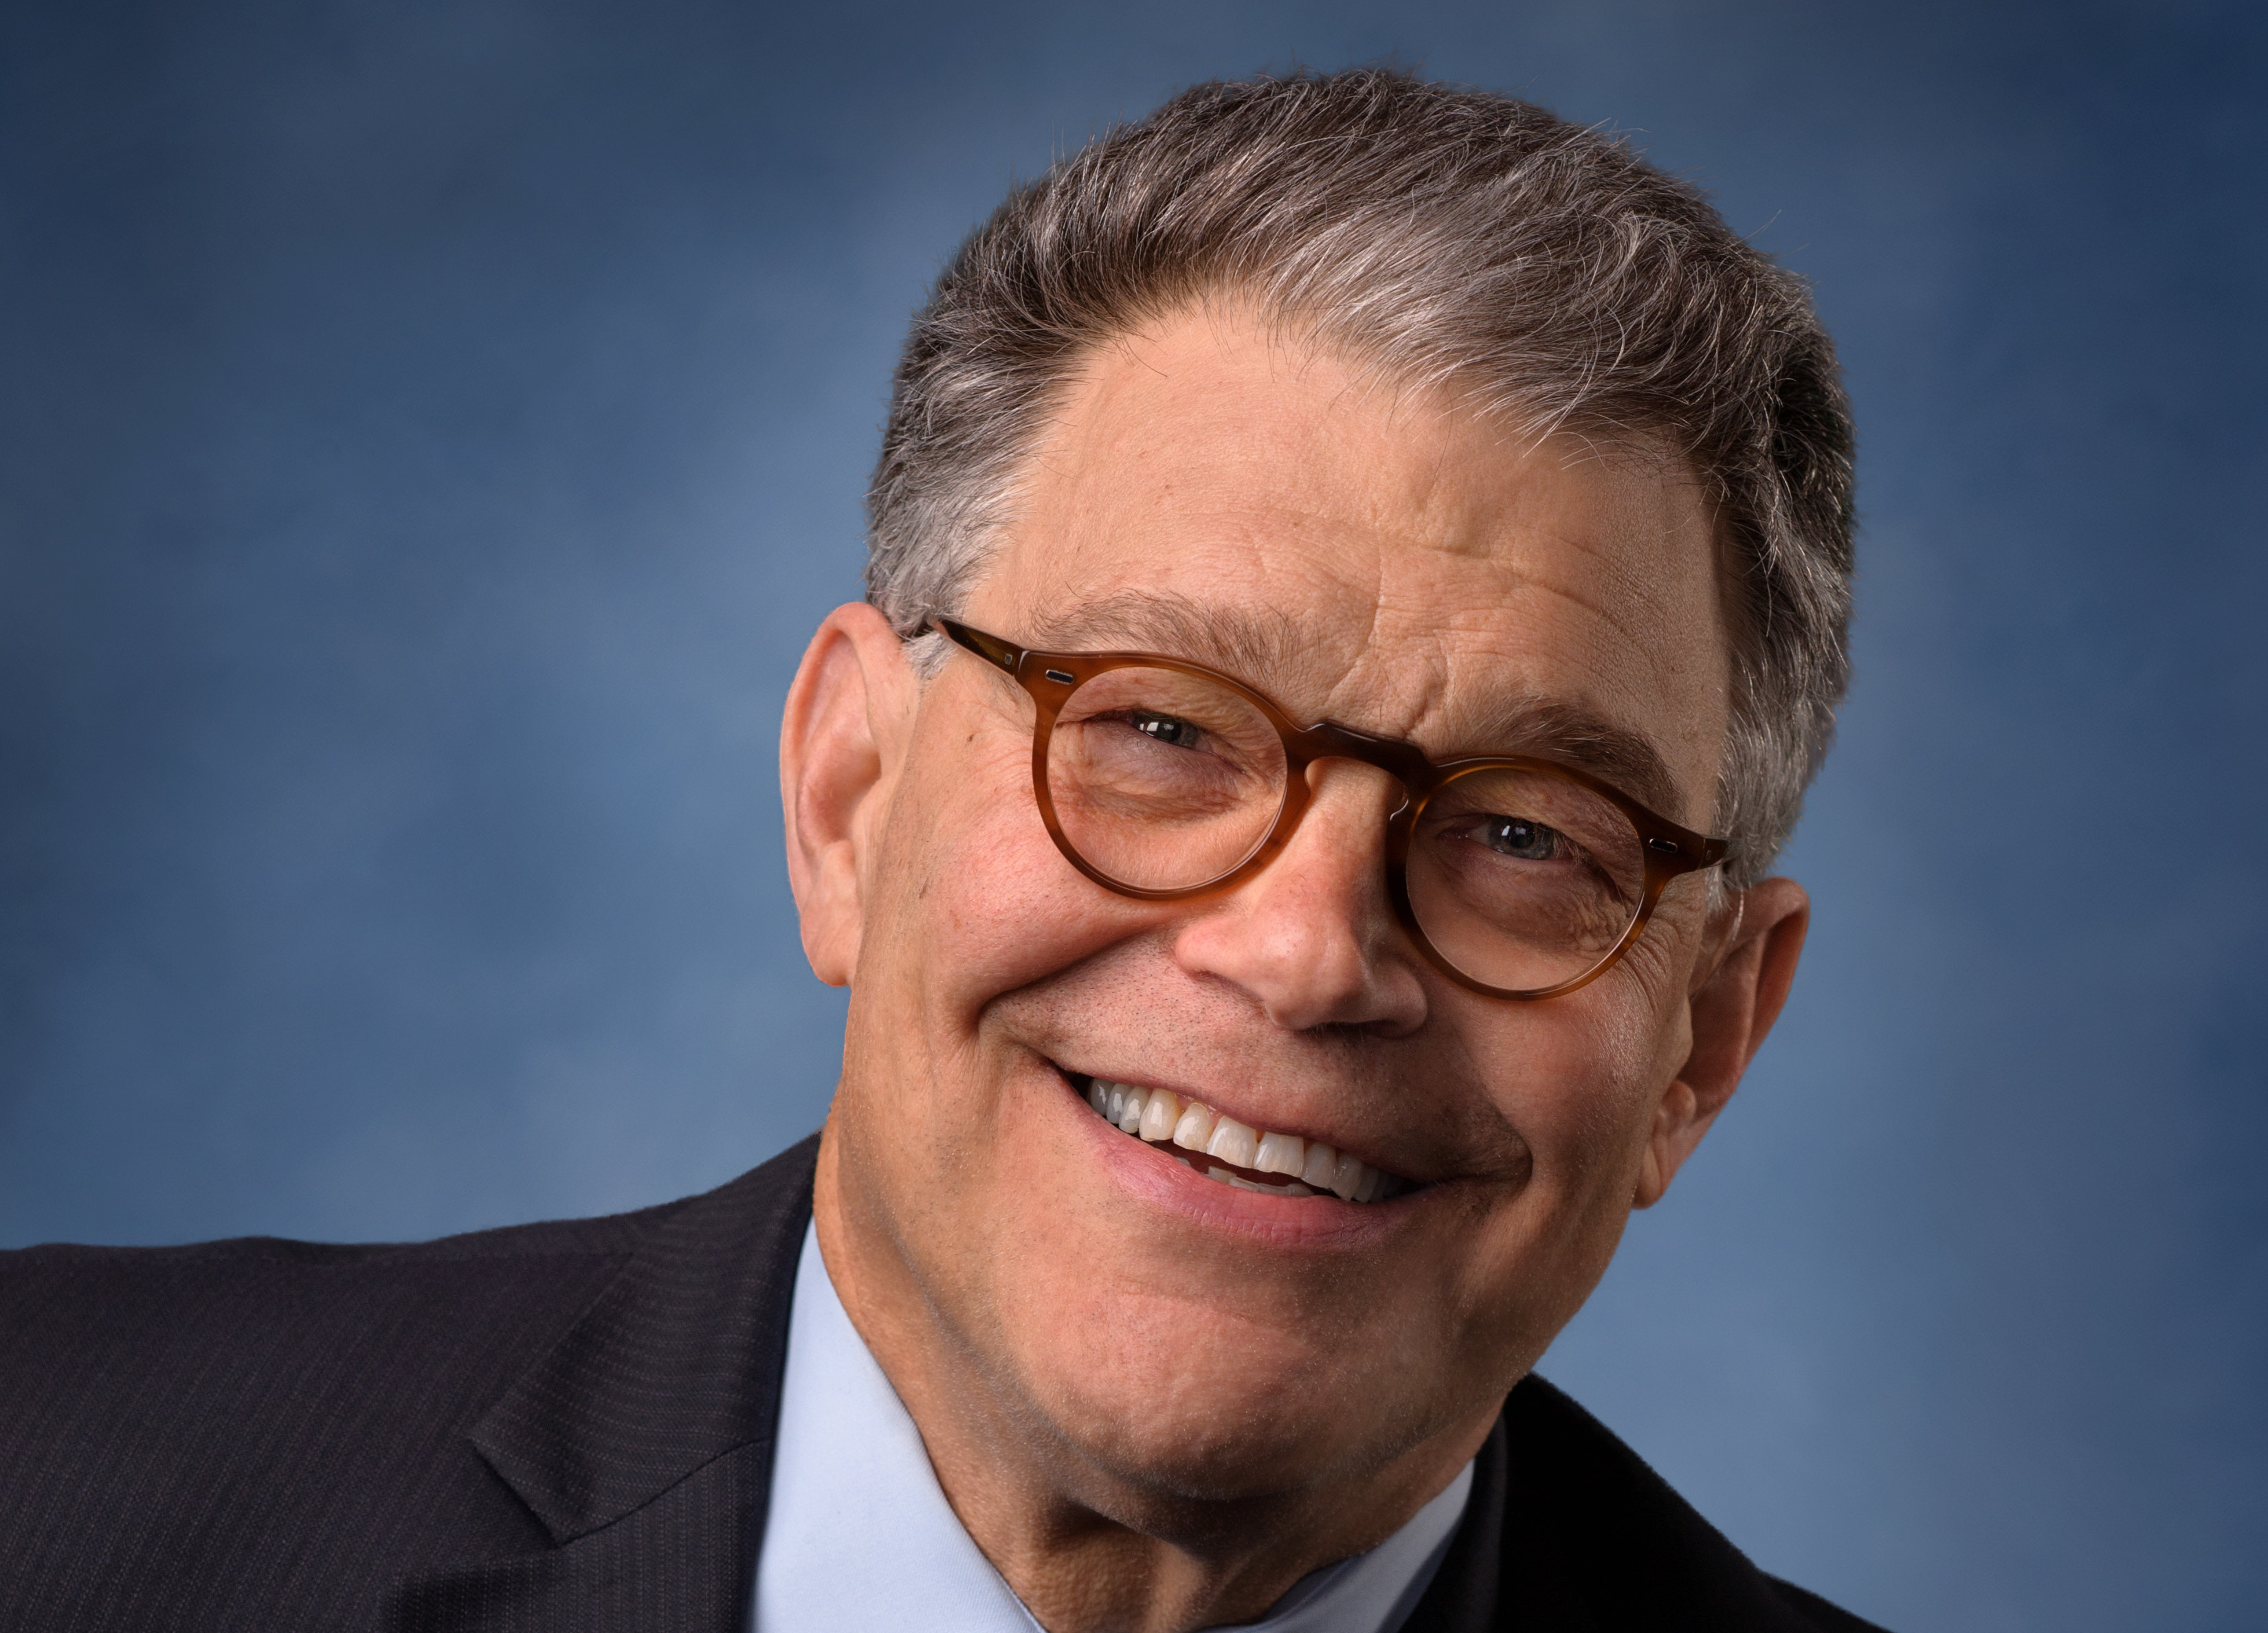 Al Franken is Fighting Back Against His Sexual Misconduct Allegations A Year and a Half After Resigning